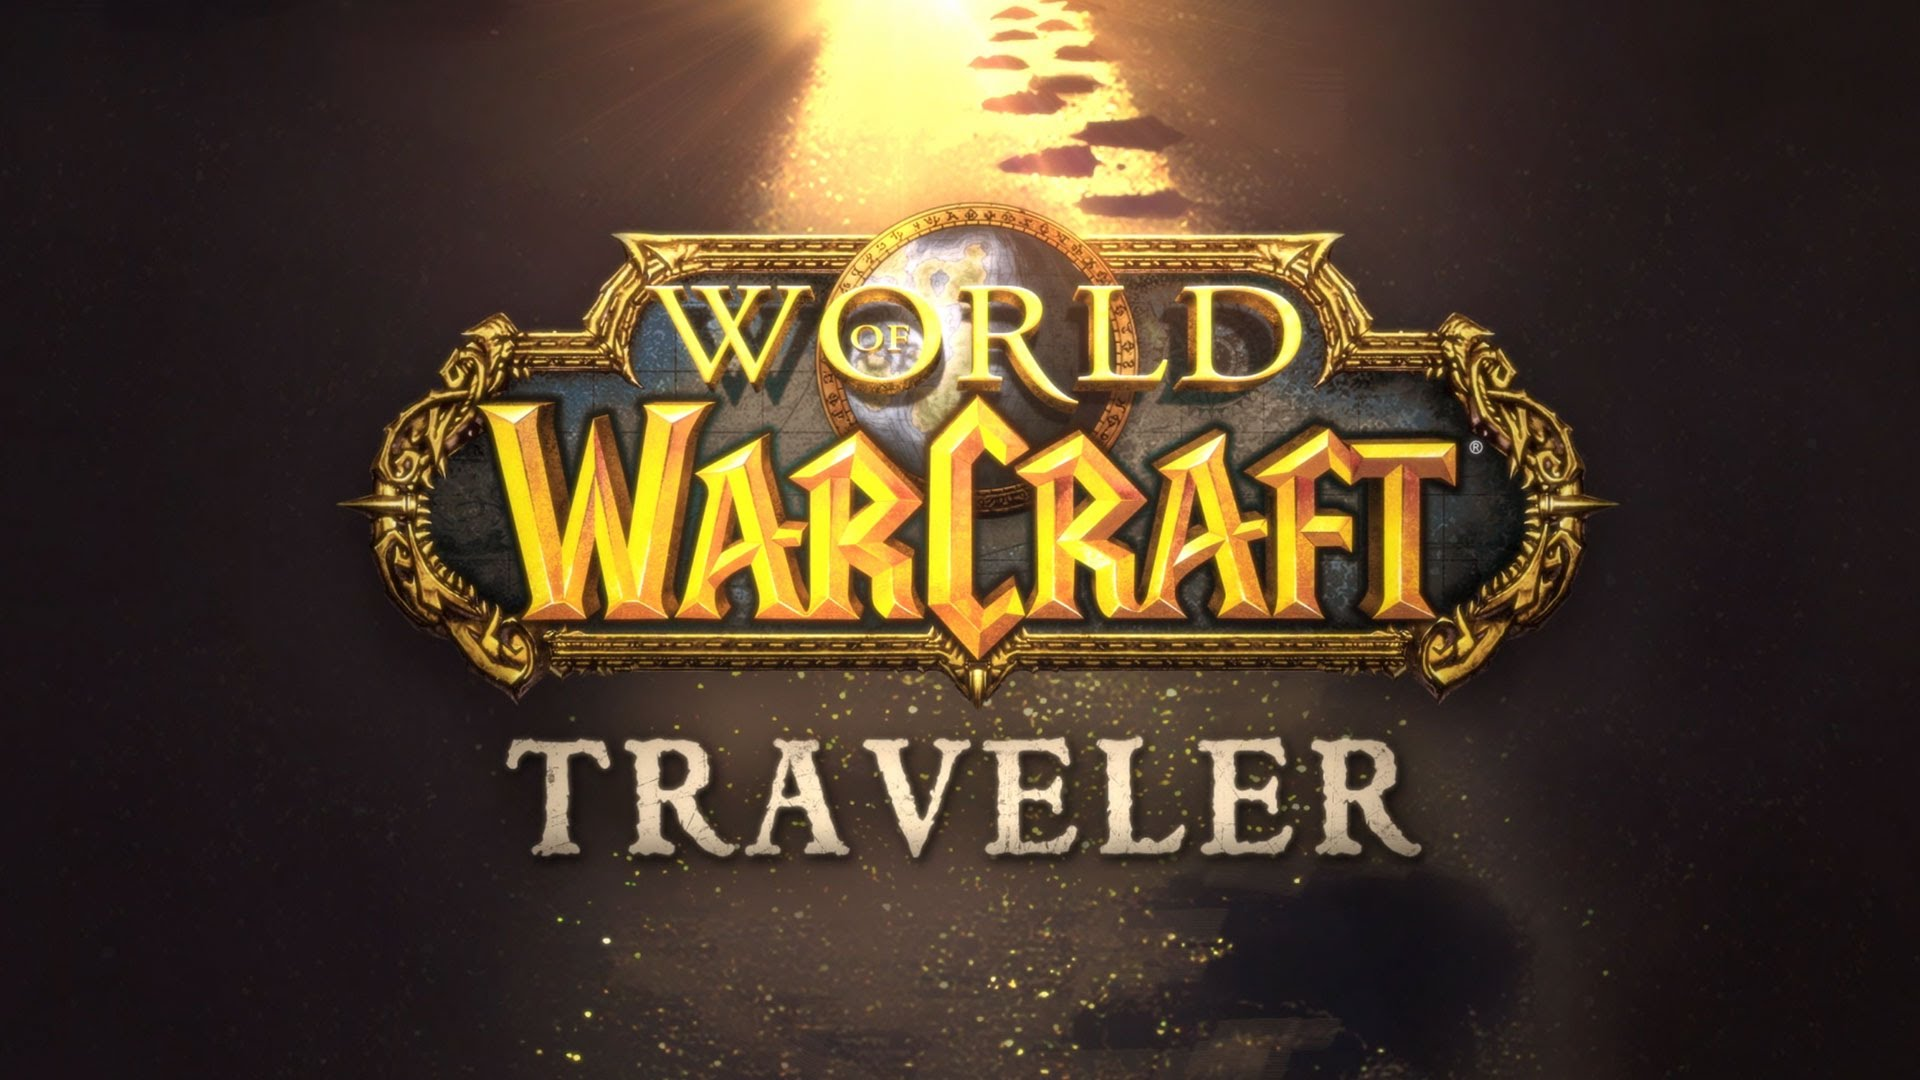 World of Warcraft: Traveler Announced